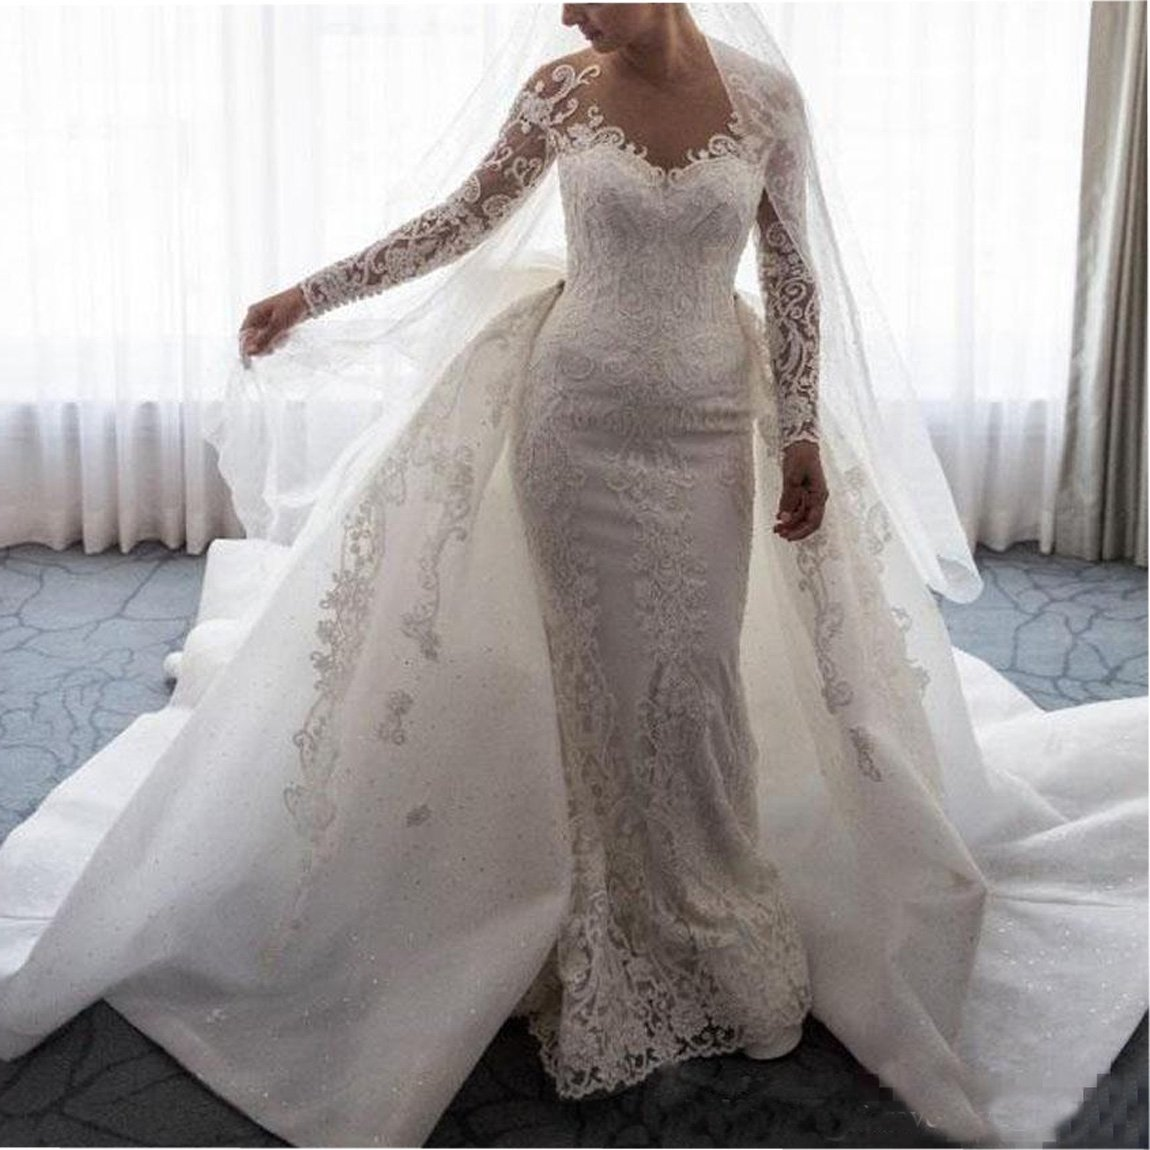 Mermaid Wedding Dresses With Sleeves: Ainisha Women's Elegant Long Sleeves Mermaid Wedding Dress